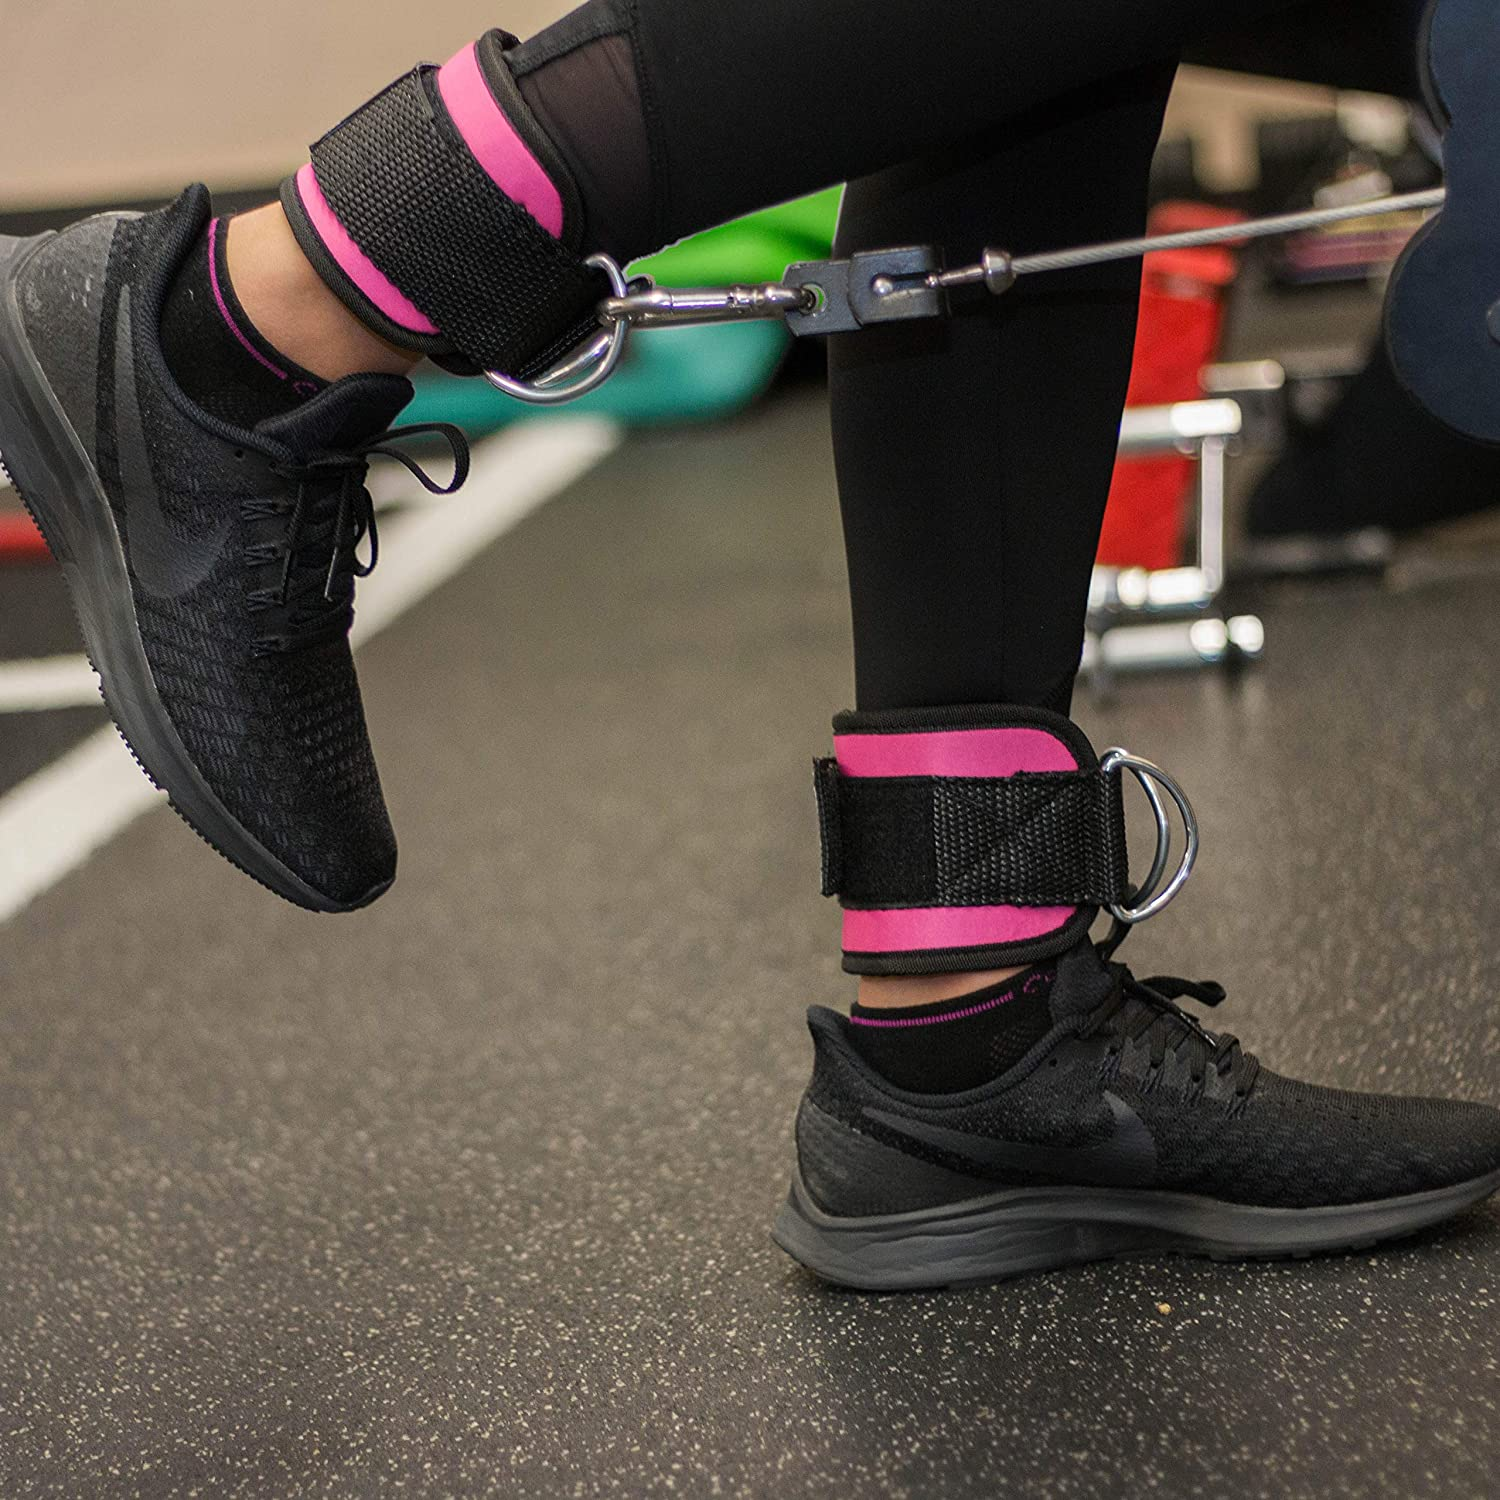 Resistance and Functional Trainers 2 Reinforced D-Rings Adjustable Neoprene Cuff Unisex Two Pair Set Black and Pink LEBBOULDER Ankle Straps For Use With Standard Cable Machines